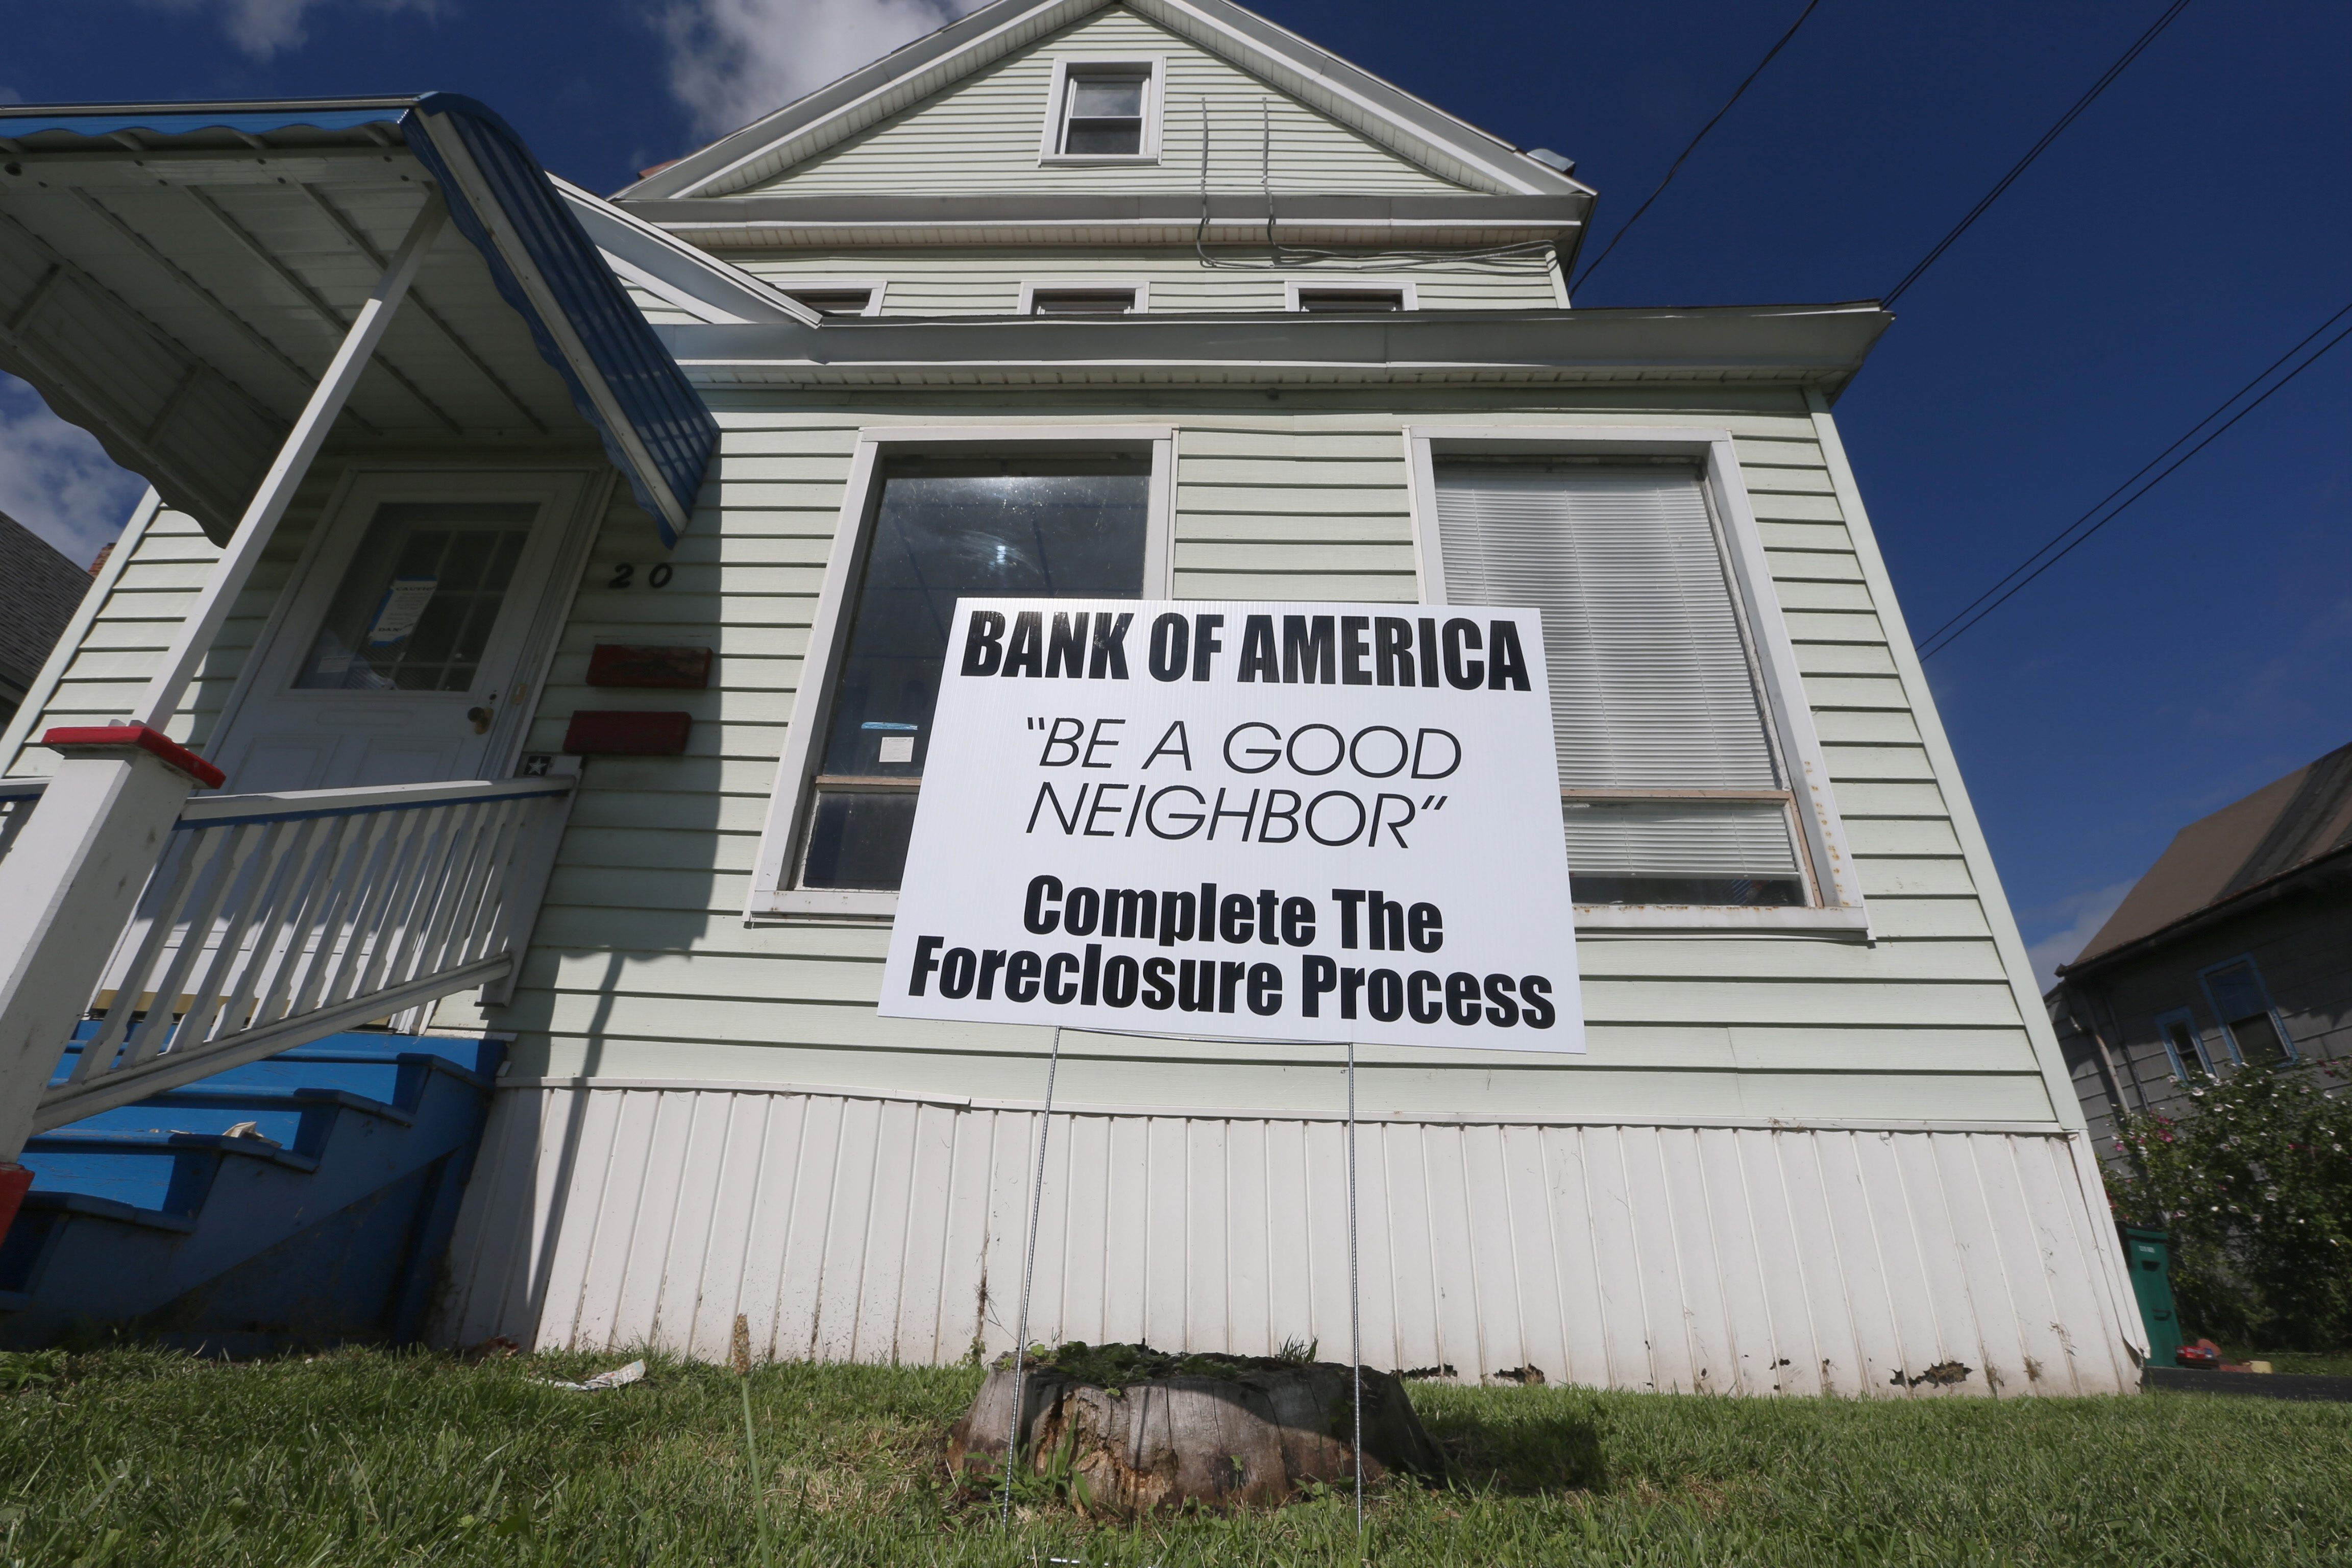 A sign draws attention to an empty home on Sidway Street in Buffalo, identifying the bank that initiated foreclosure in 2010. The property owner died in 2007, and the home has been vacant since.